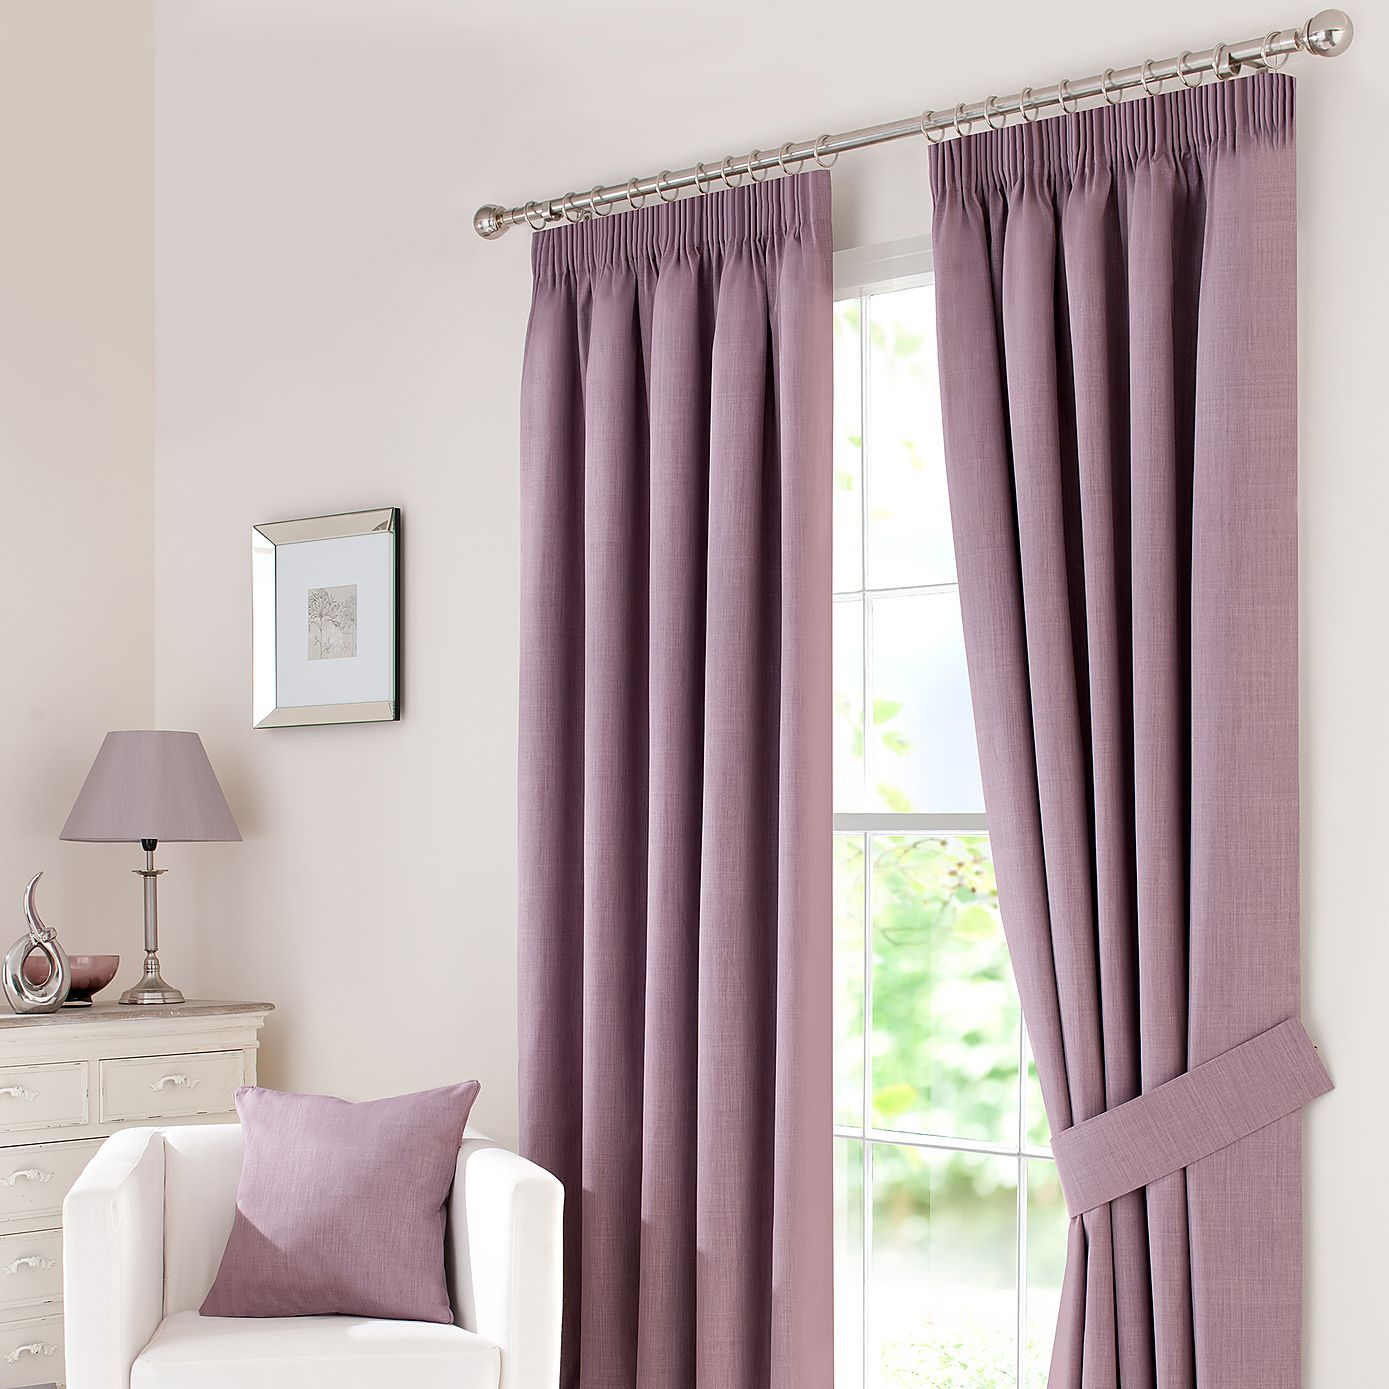 Mauve Solar Blackout Pencil Pleat Curtain Dunelm. Also